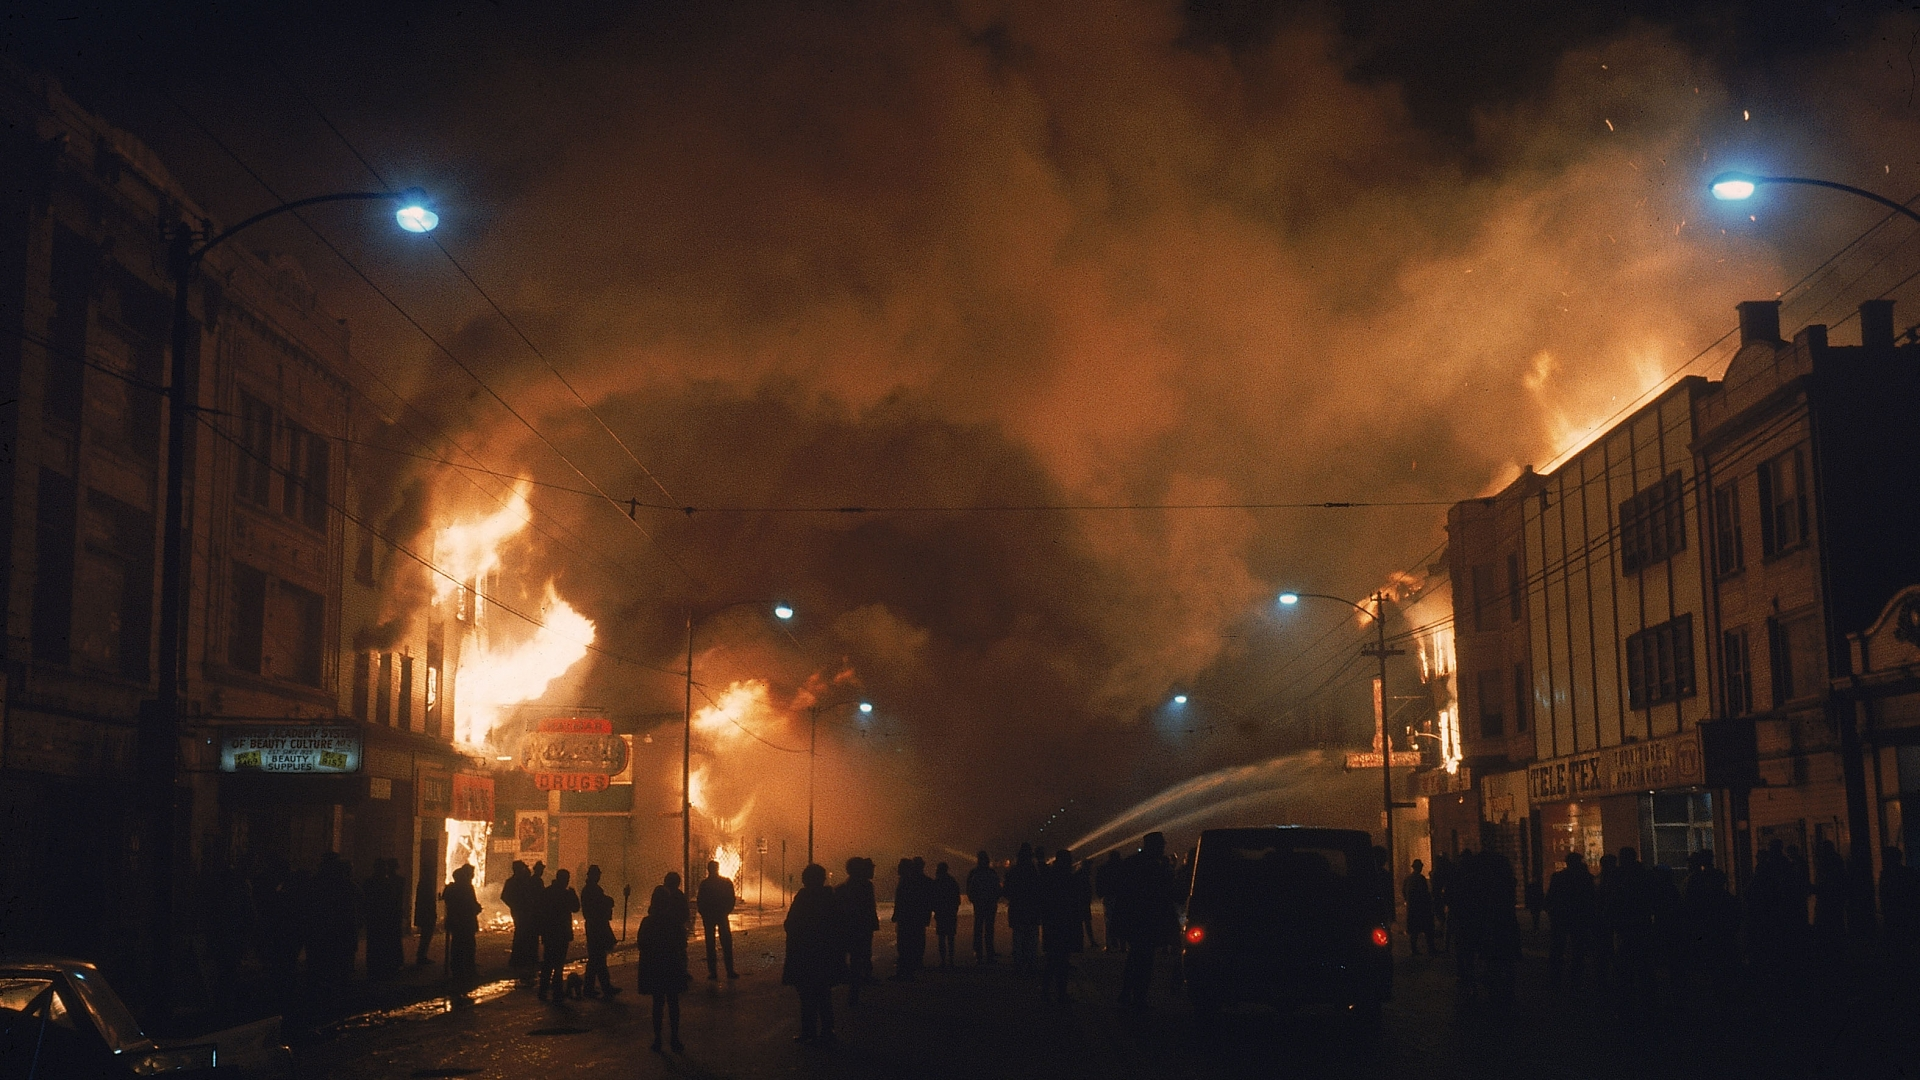 Streets ablaze from rioting following the assassination of Martin Luther King Jr., 1968. (Credit: Lee Balterman/The LIFE Picture Collection/Getty Images)